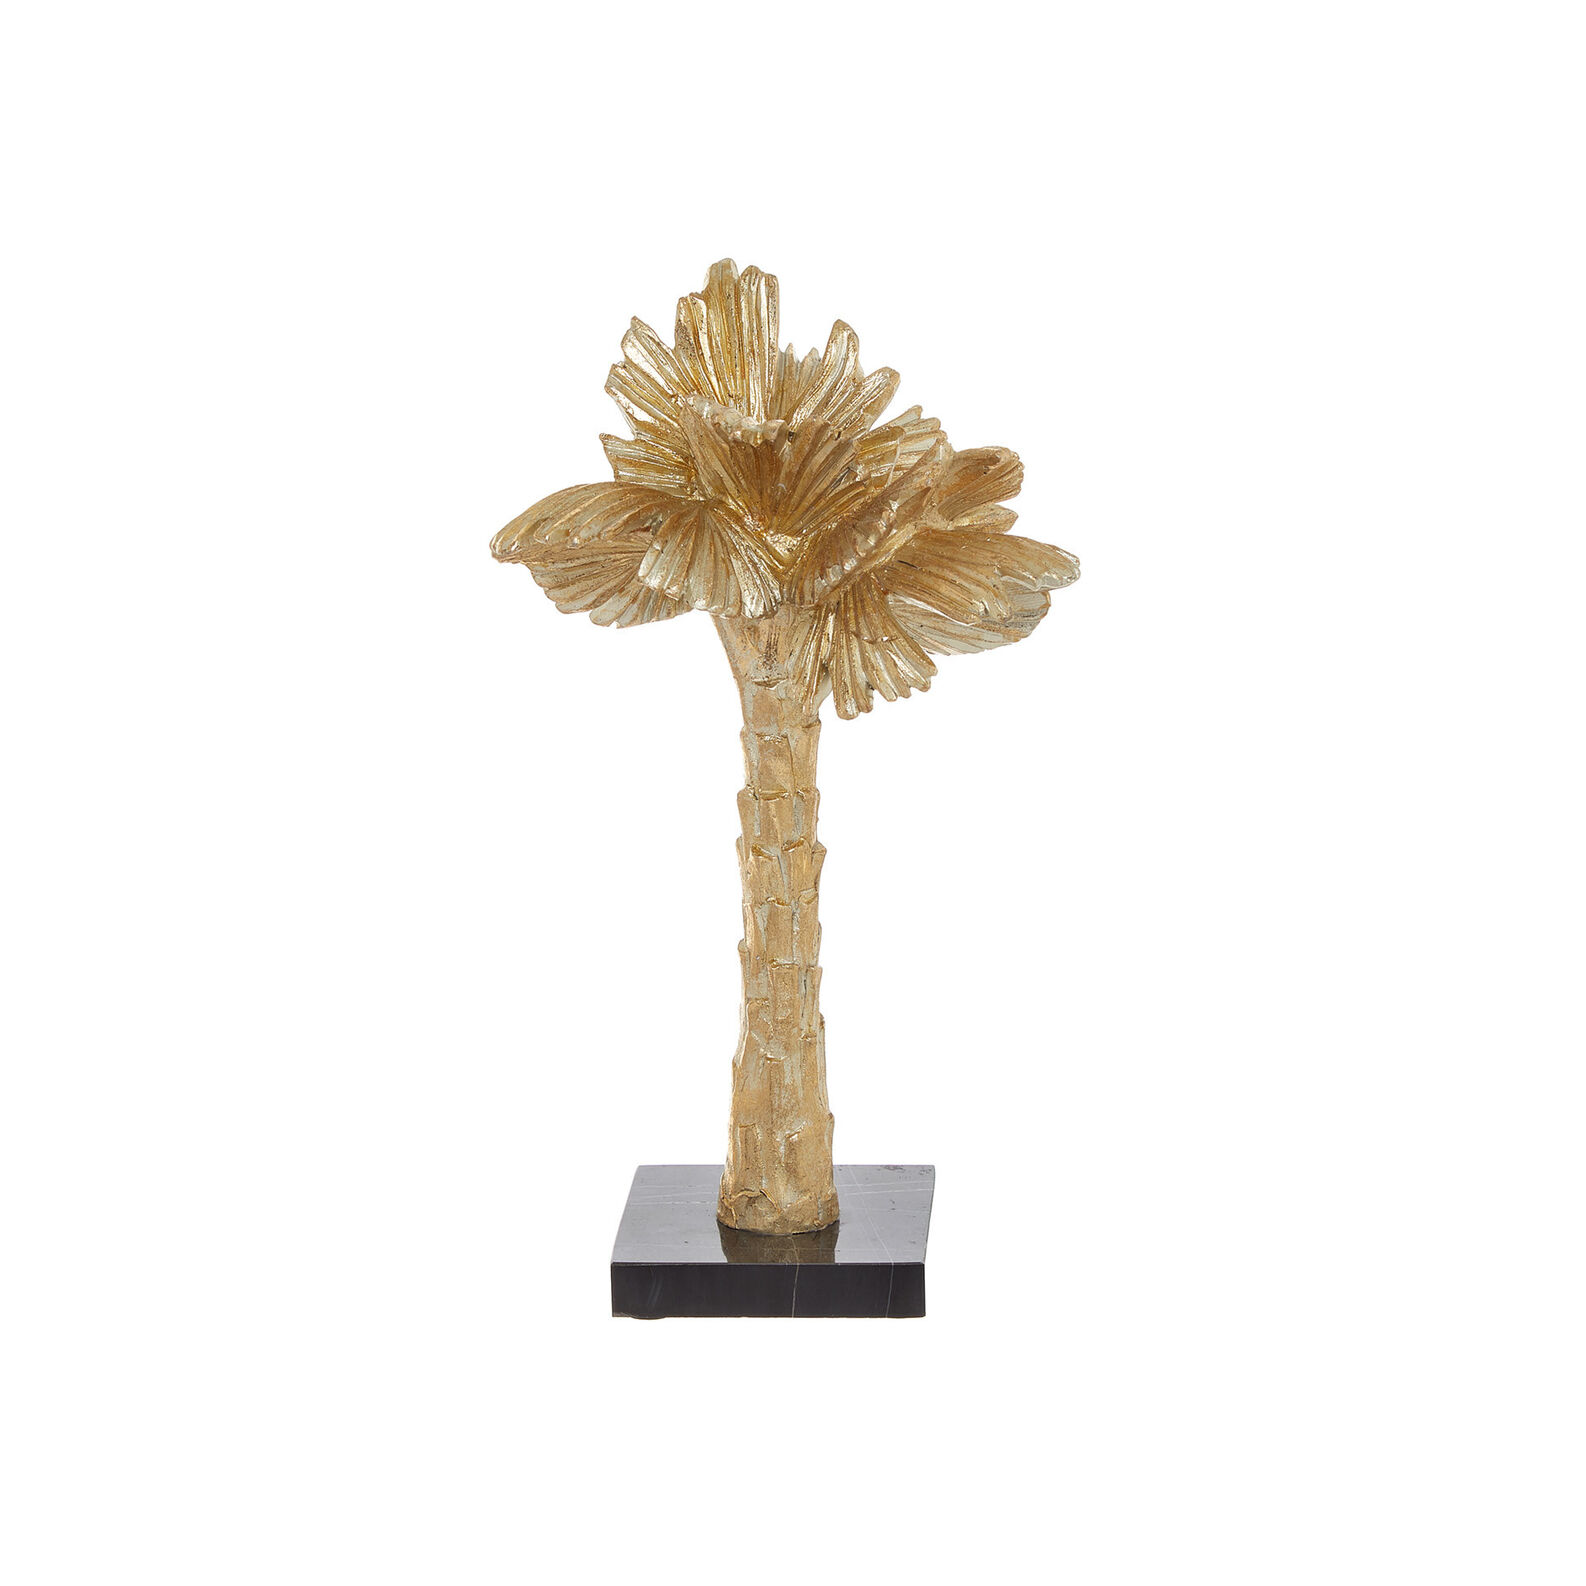 Hand-finished decorative palm